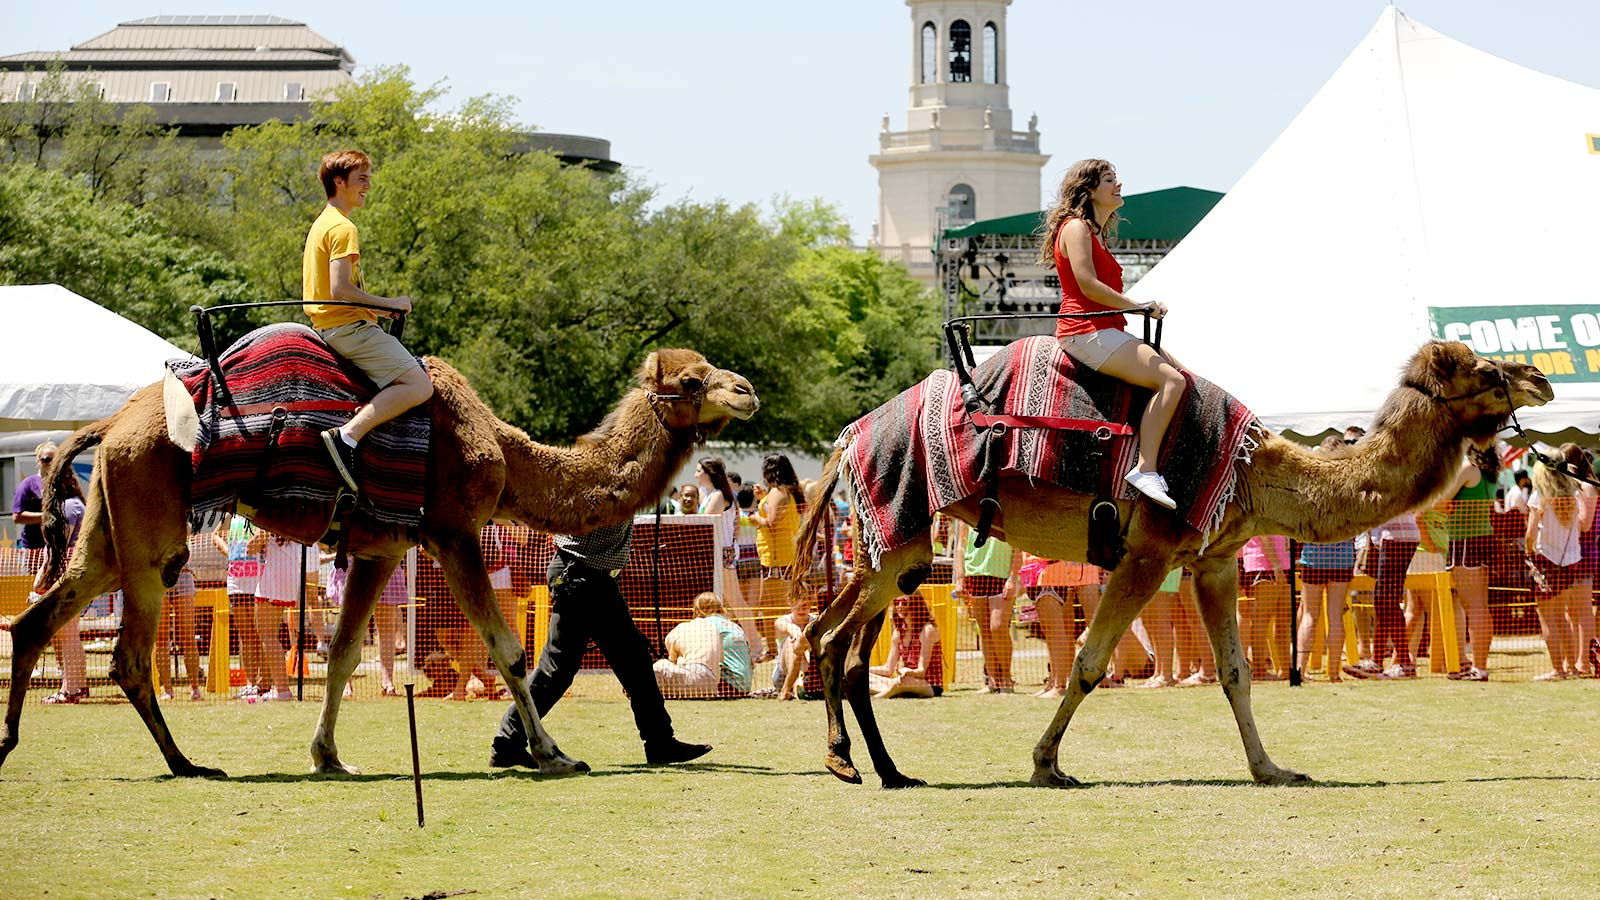 Concerts, games, competitions, and even camels highlight the annual